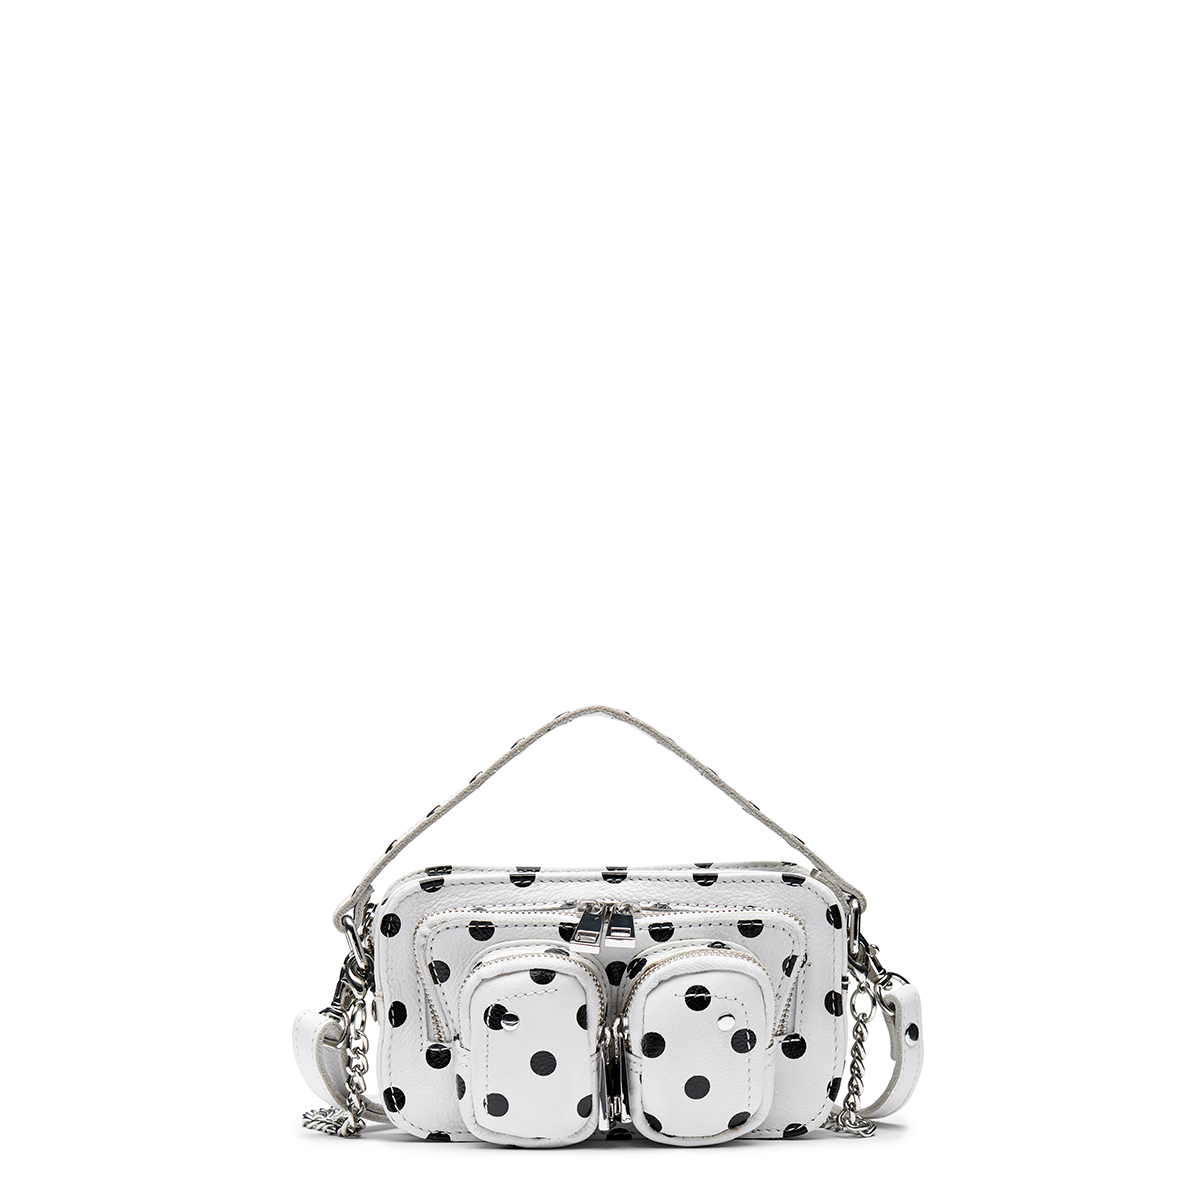 NÚNOO TASKE - HELENA DOT WHITE W. BLACK DOTS